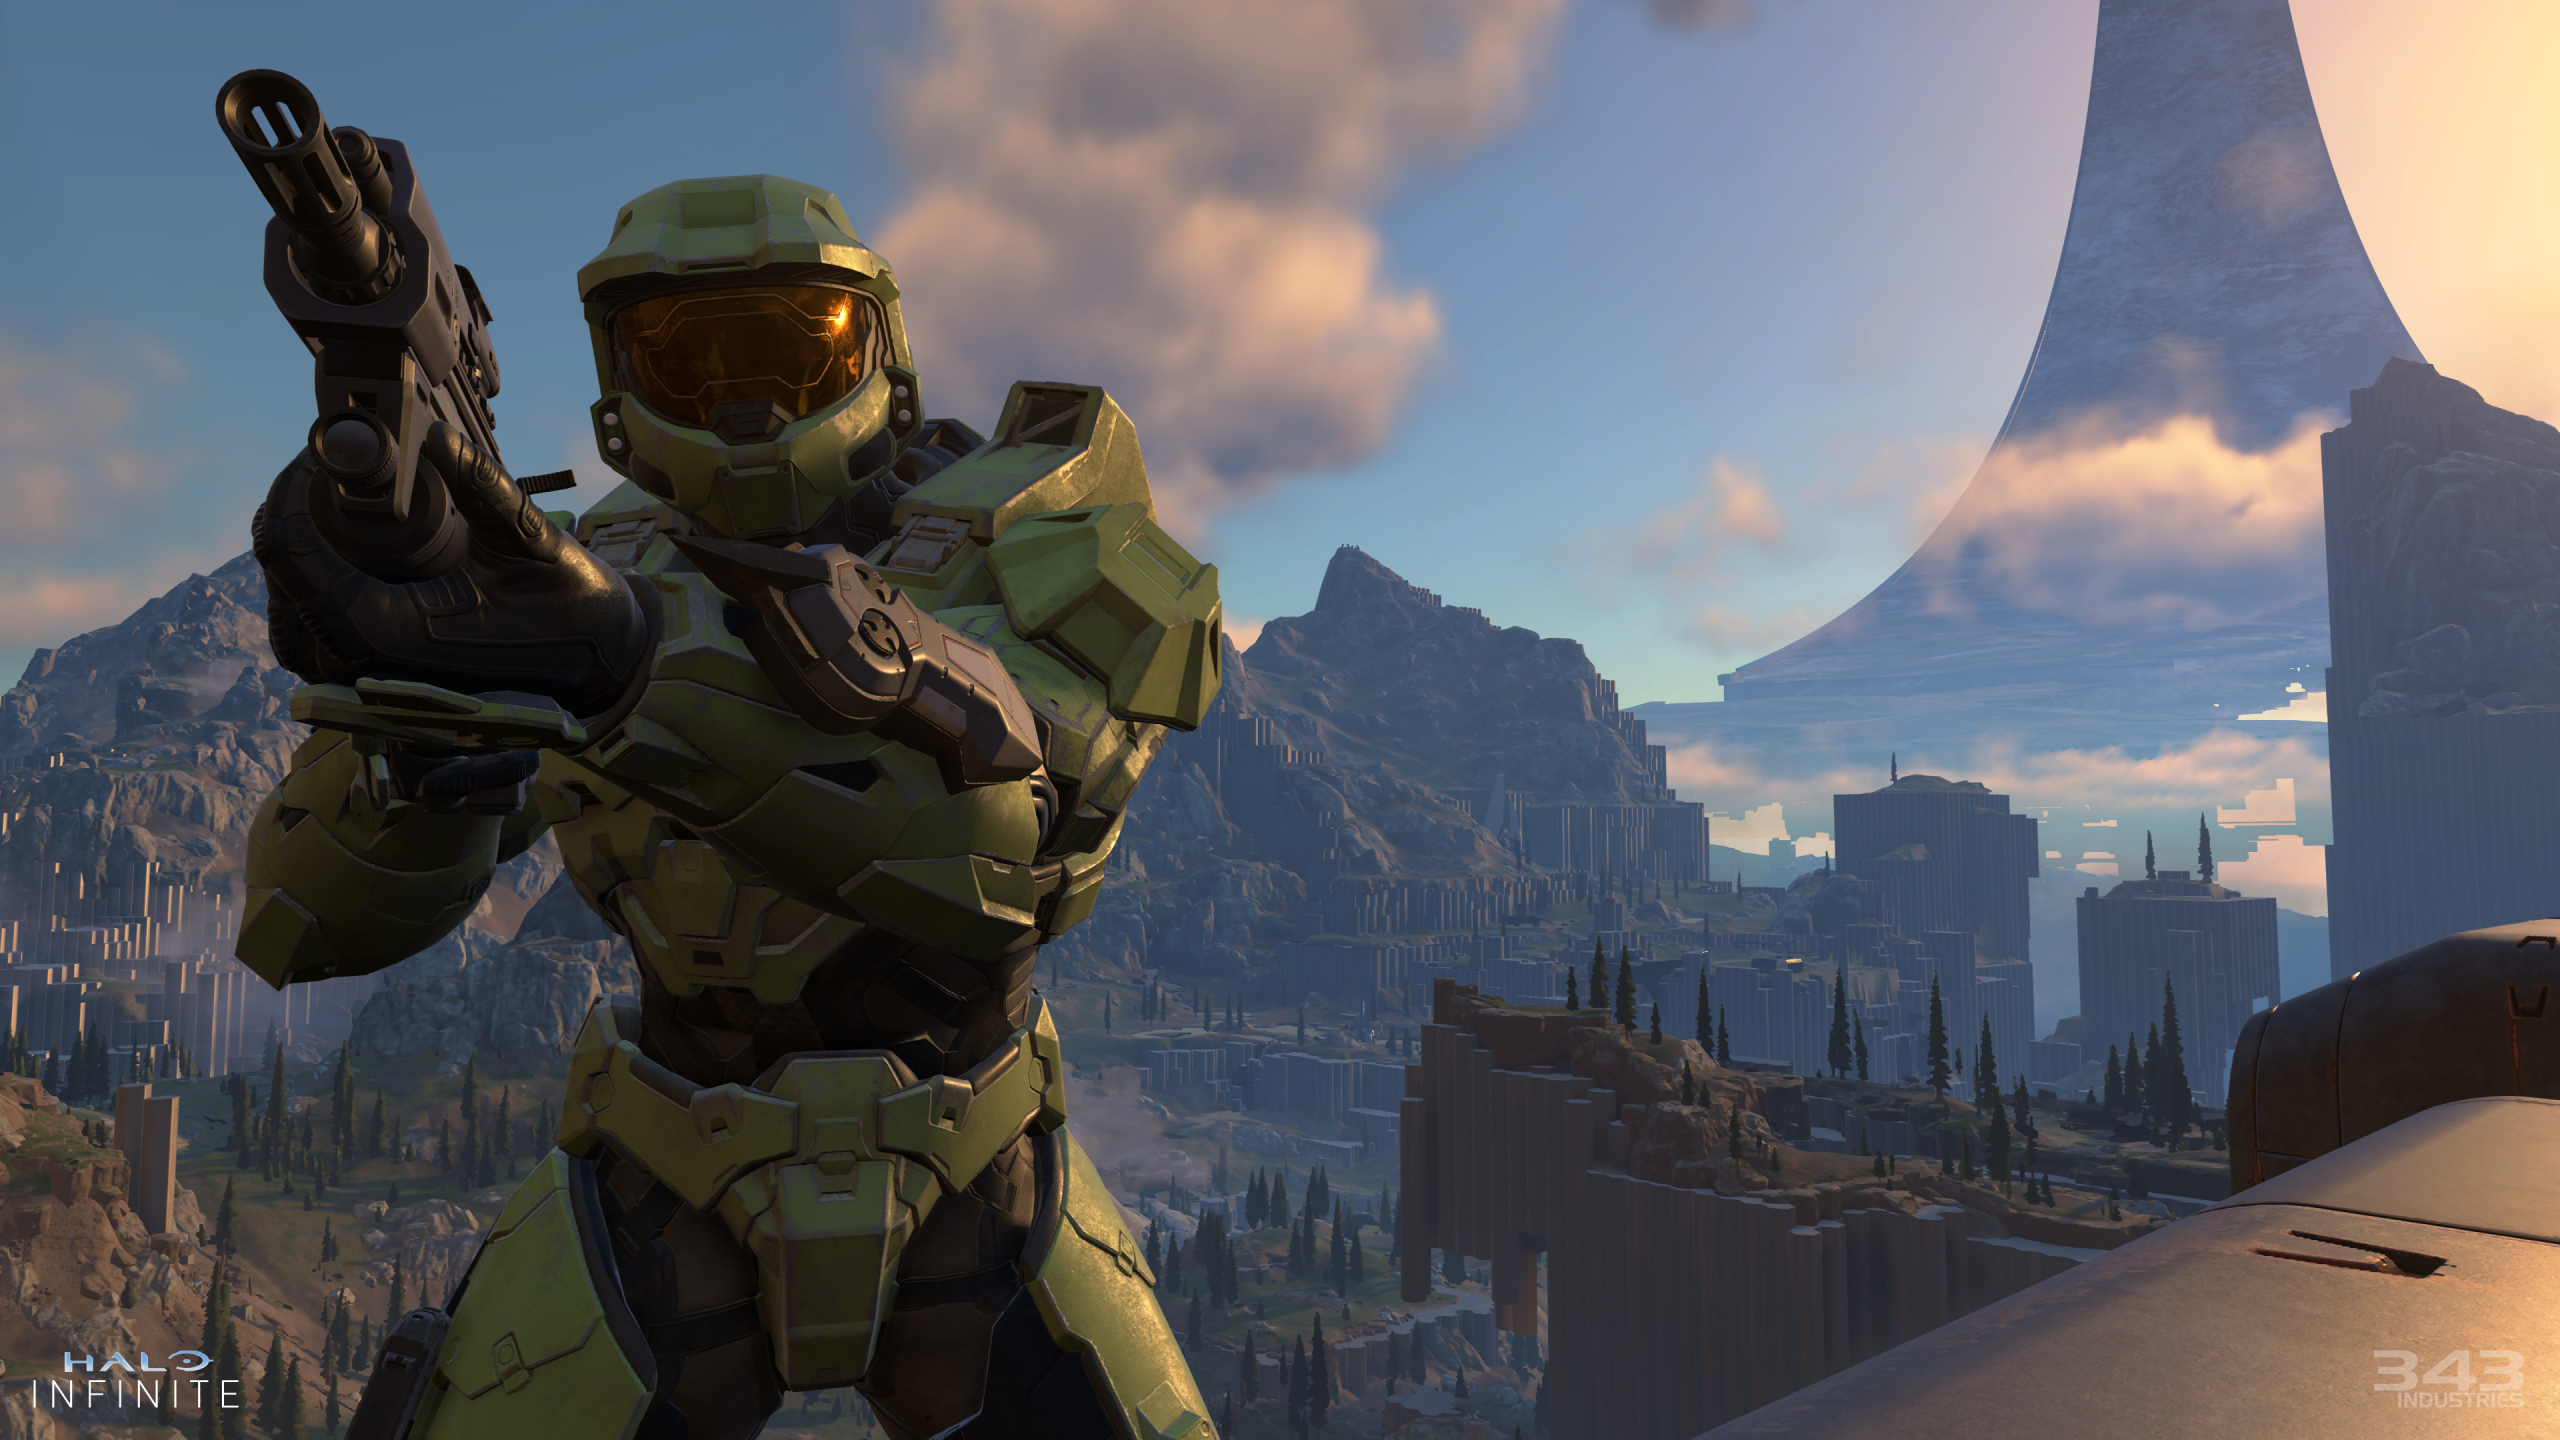 2560x1440 Halo Infinite New 4k 1440p Resolution Wallpaper Hd Games 4k Wallpapers Images Photos And Background Wallpapers Den